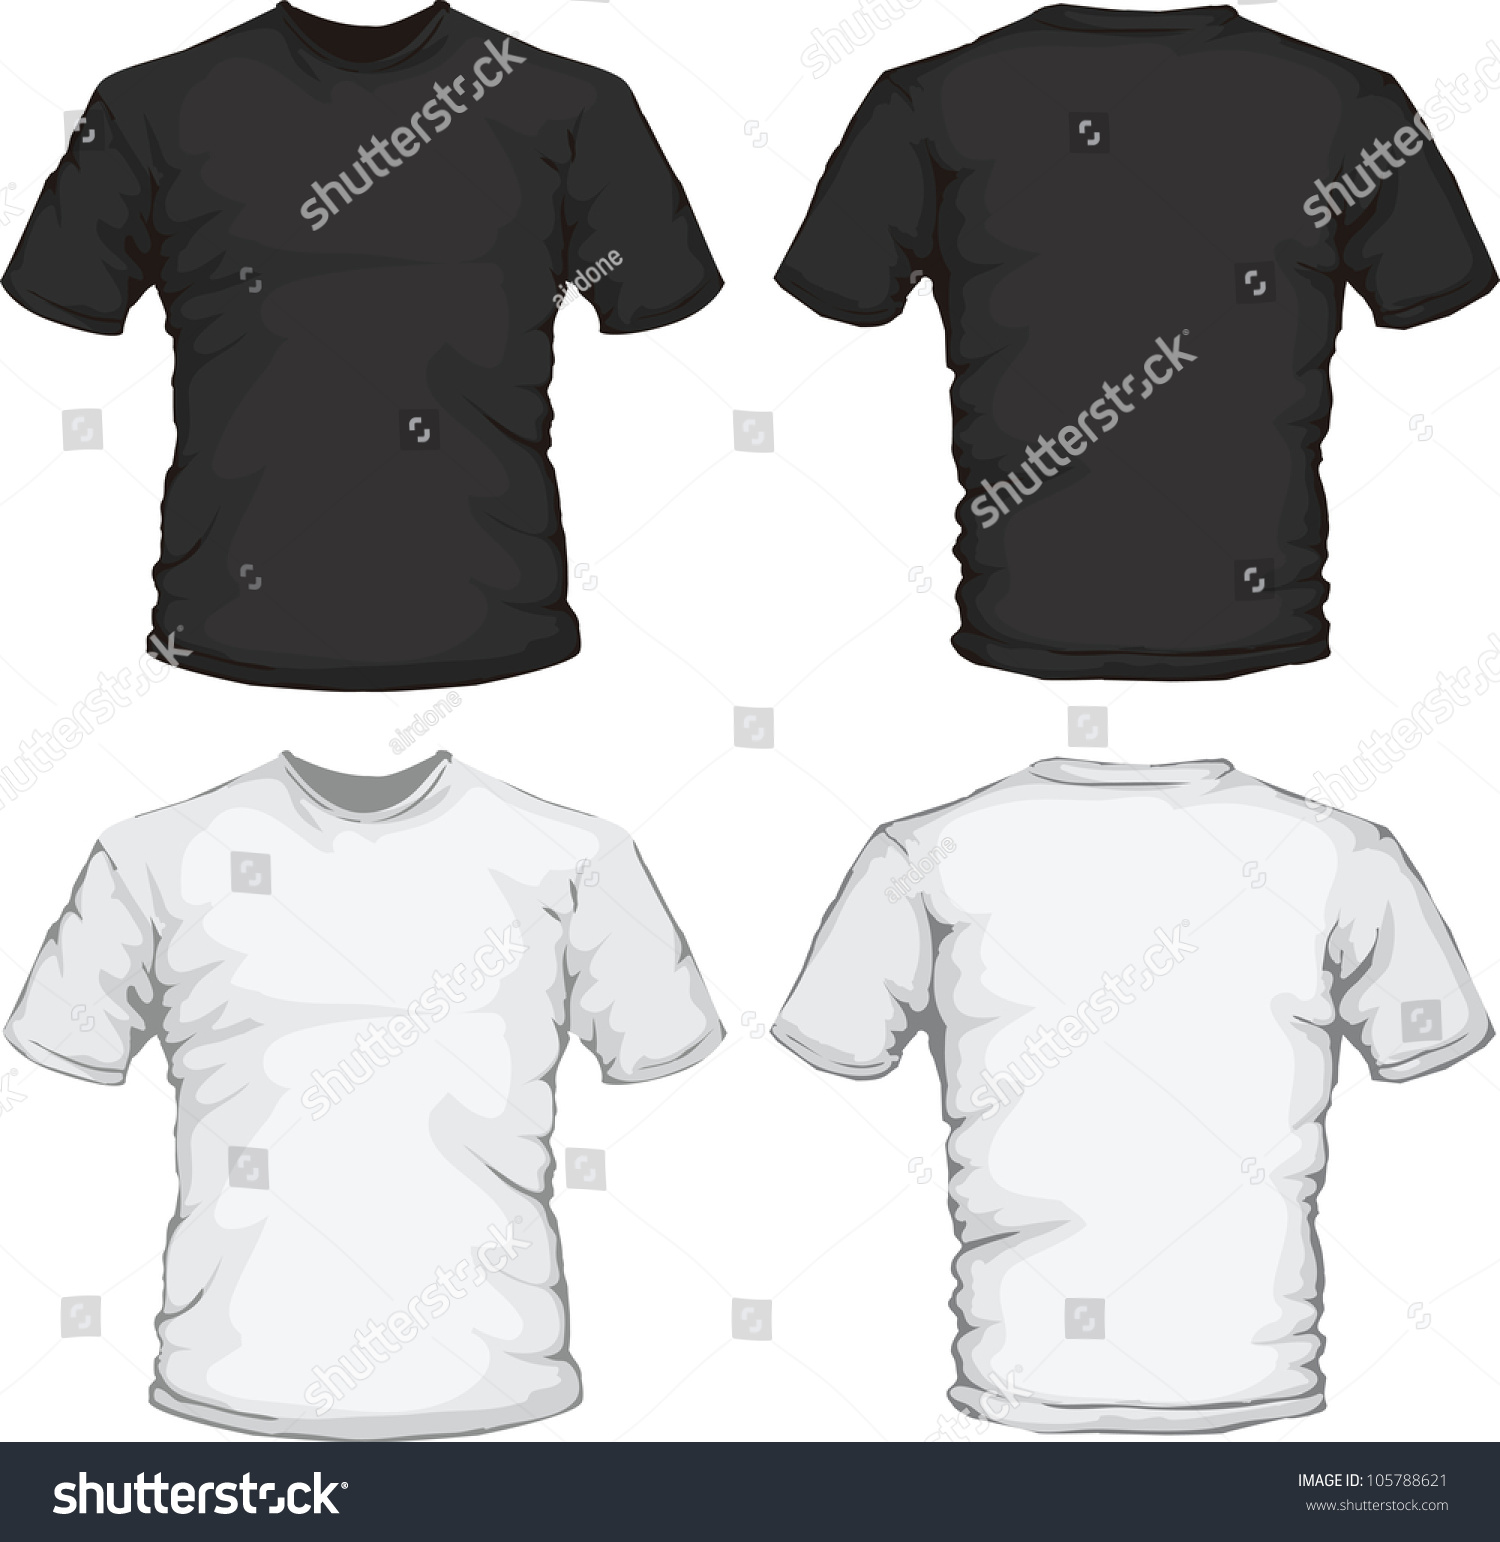 Black t shirt back and front template - Vector Illustration Of Black And White Male Shirts Template Front And Back Design Check